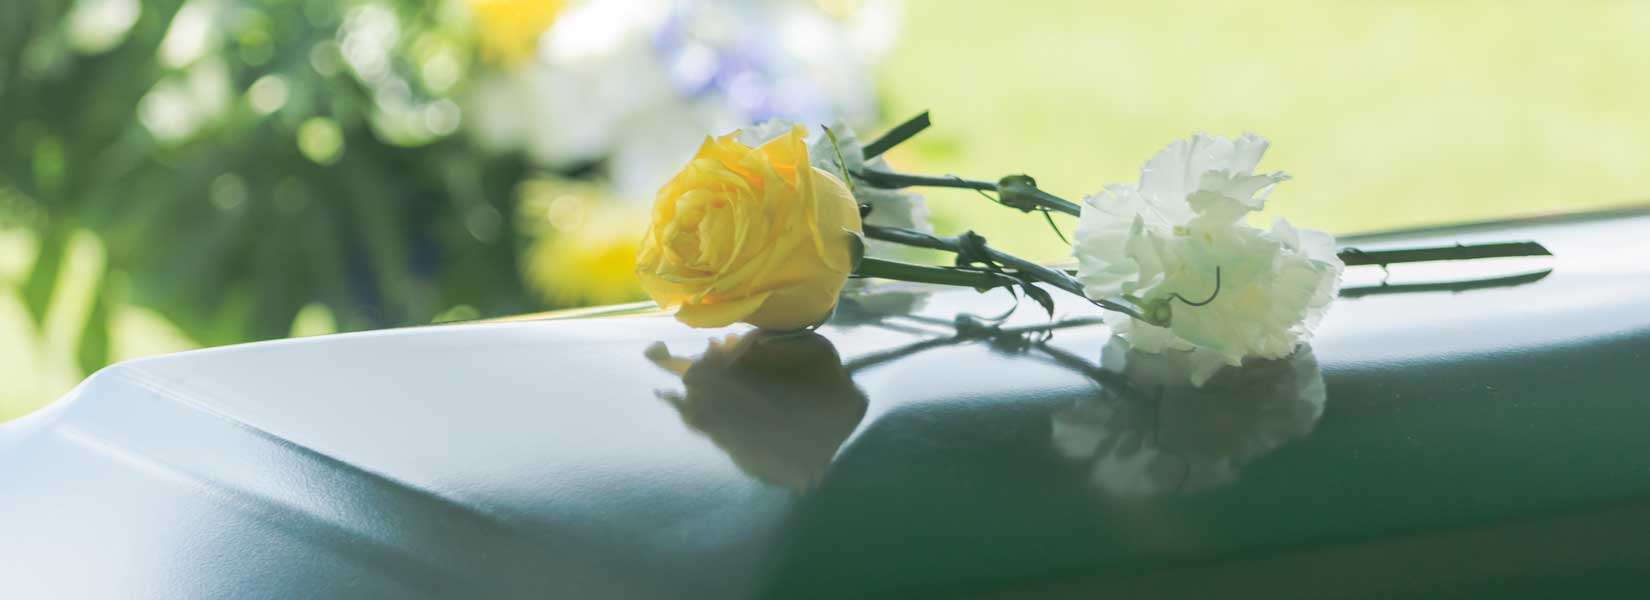 Funeral service for a person who was terminally ill